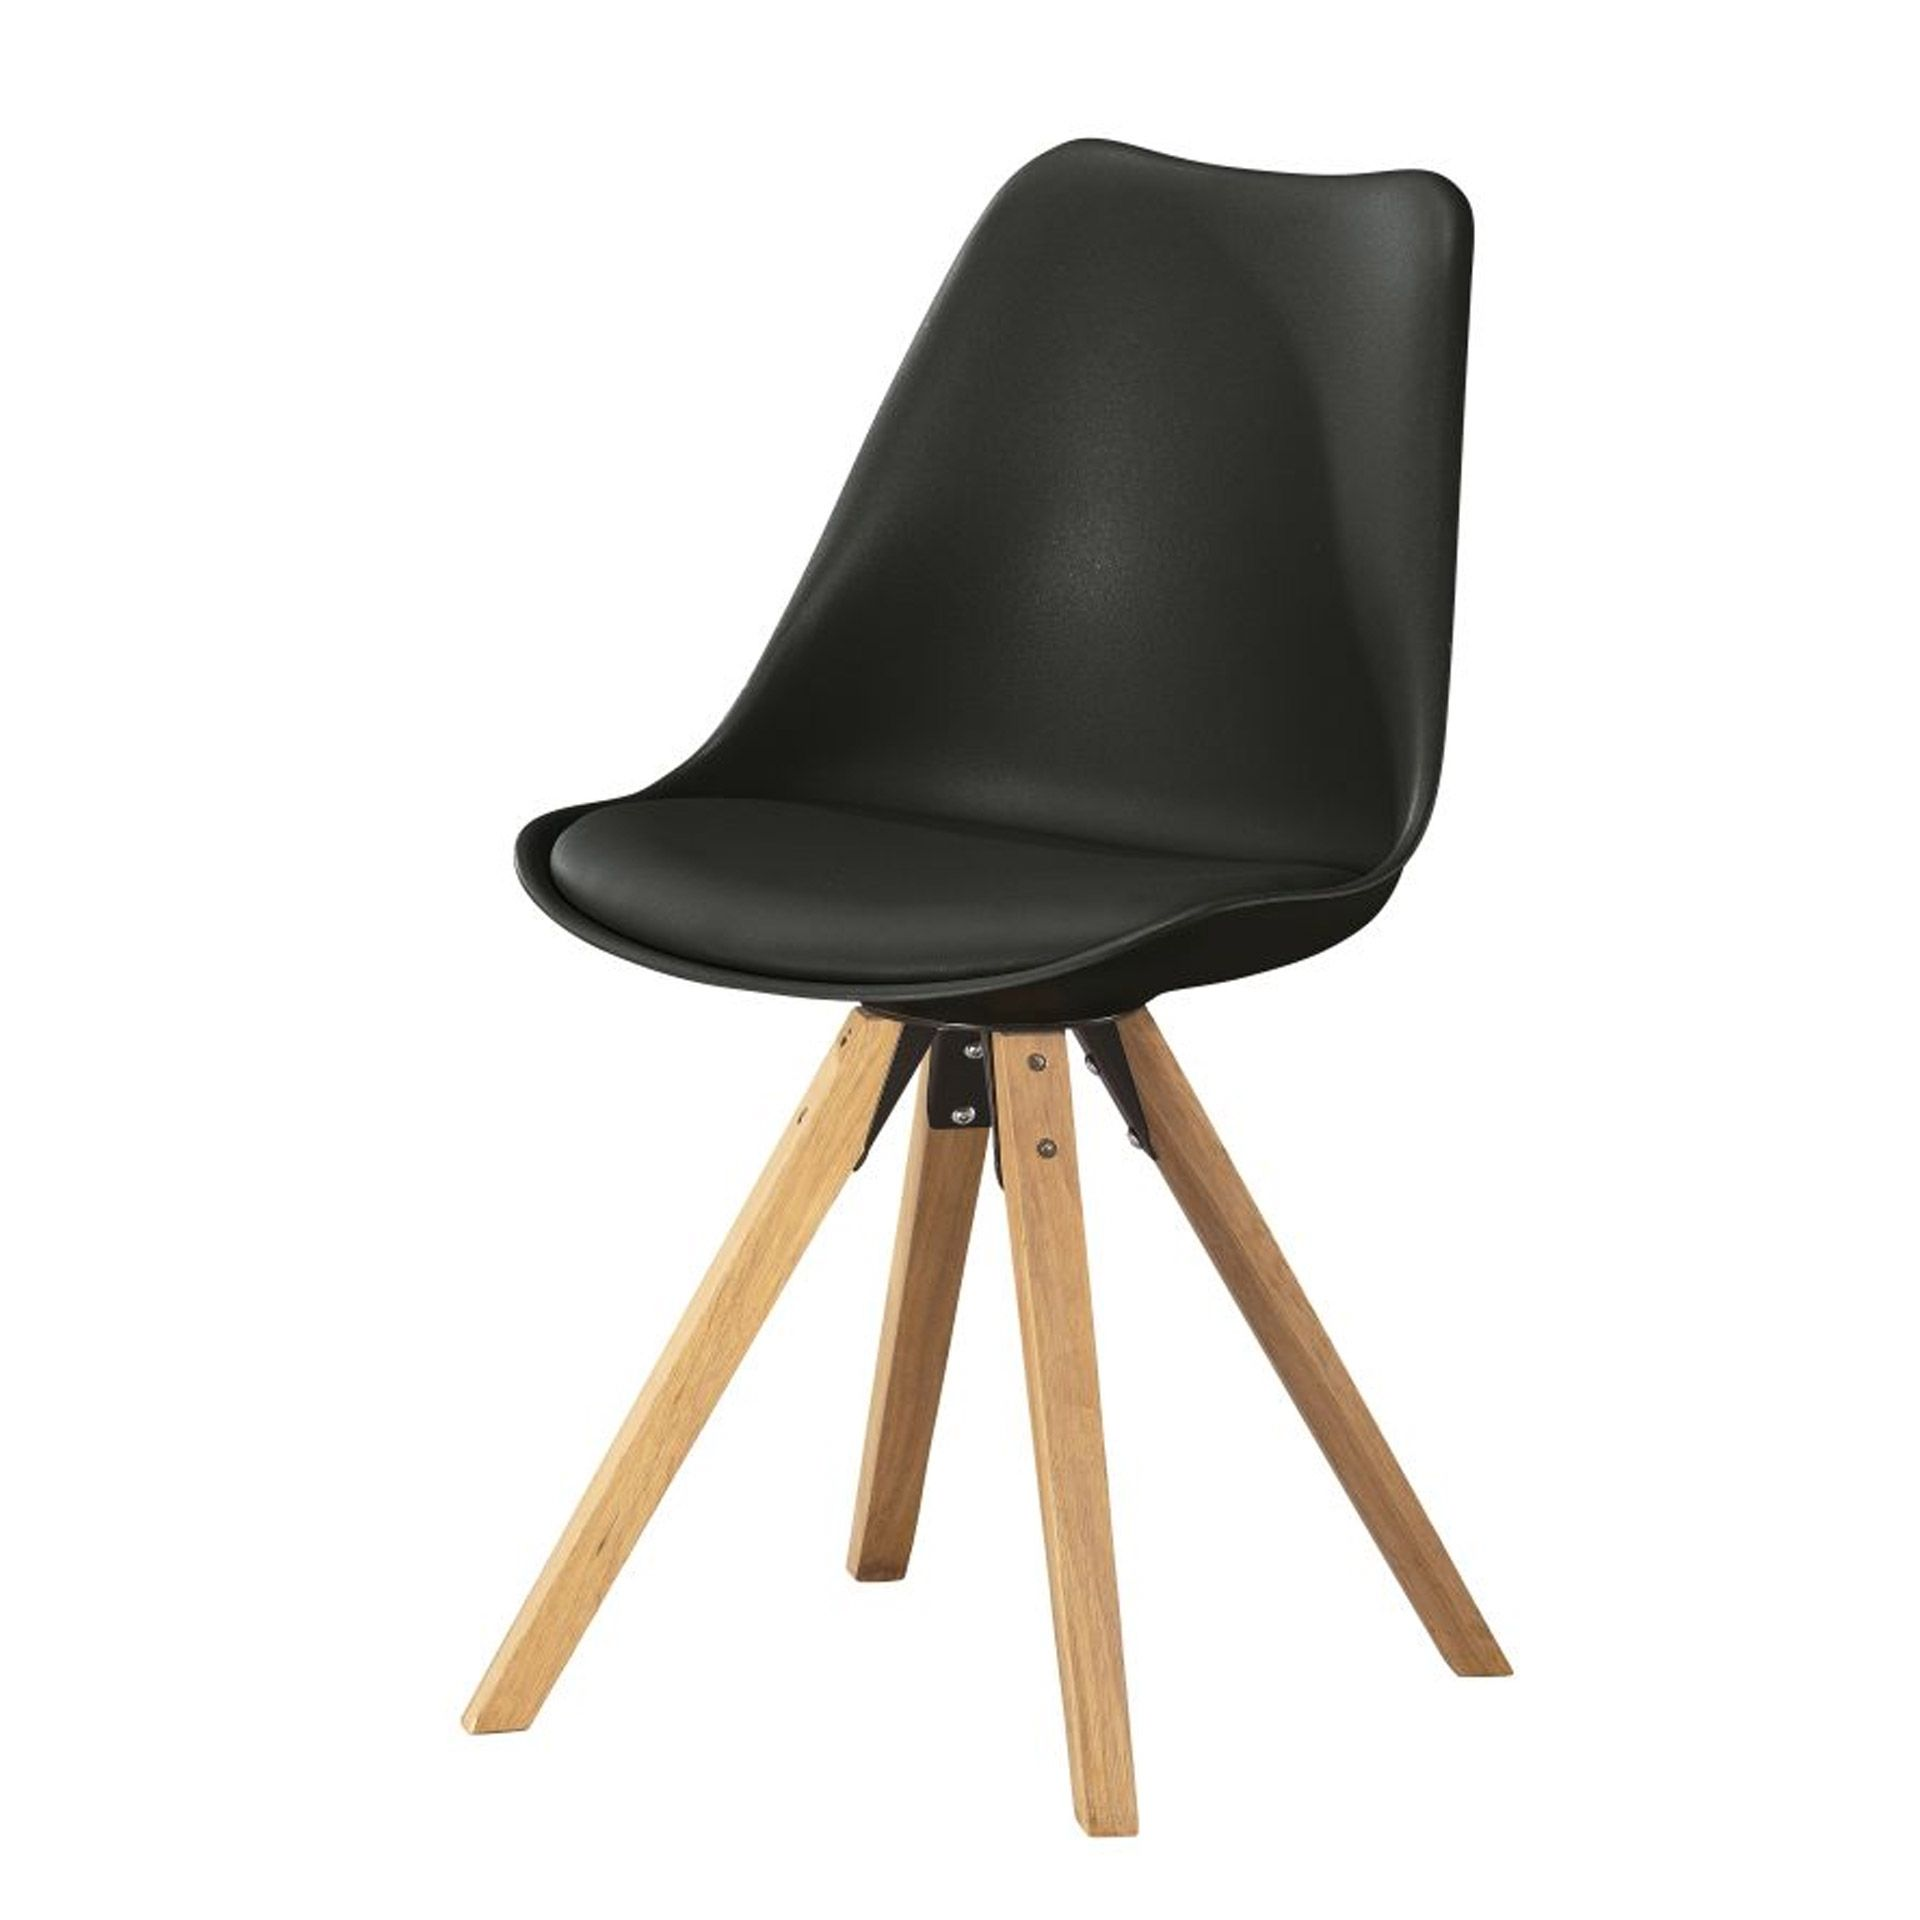 Esszimmerstuhl Fanny Pin By Ladendirekt On Stühle Und Hocker Furniture Chair Eames